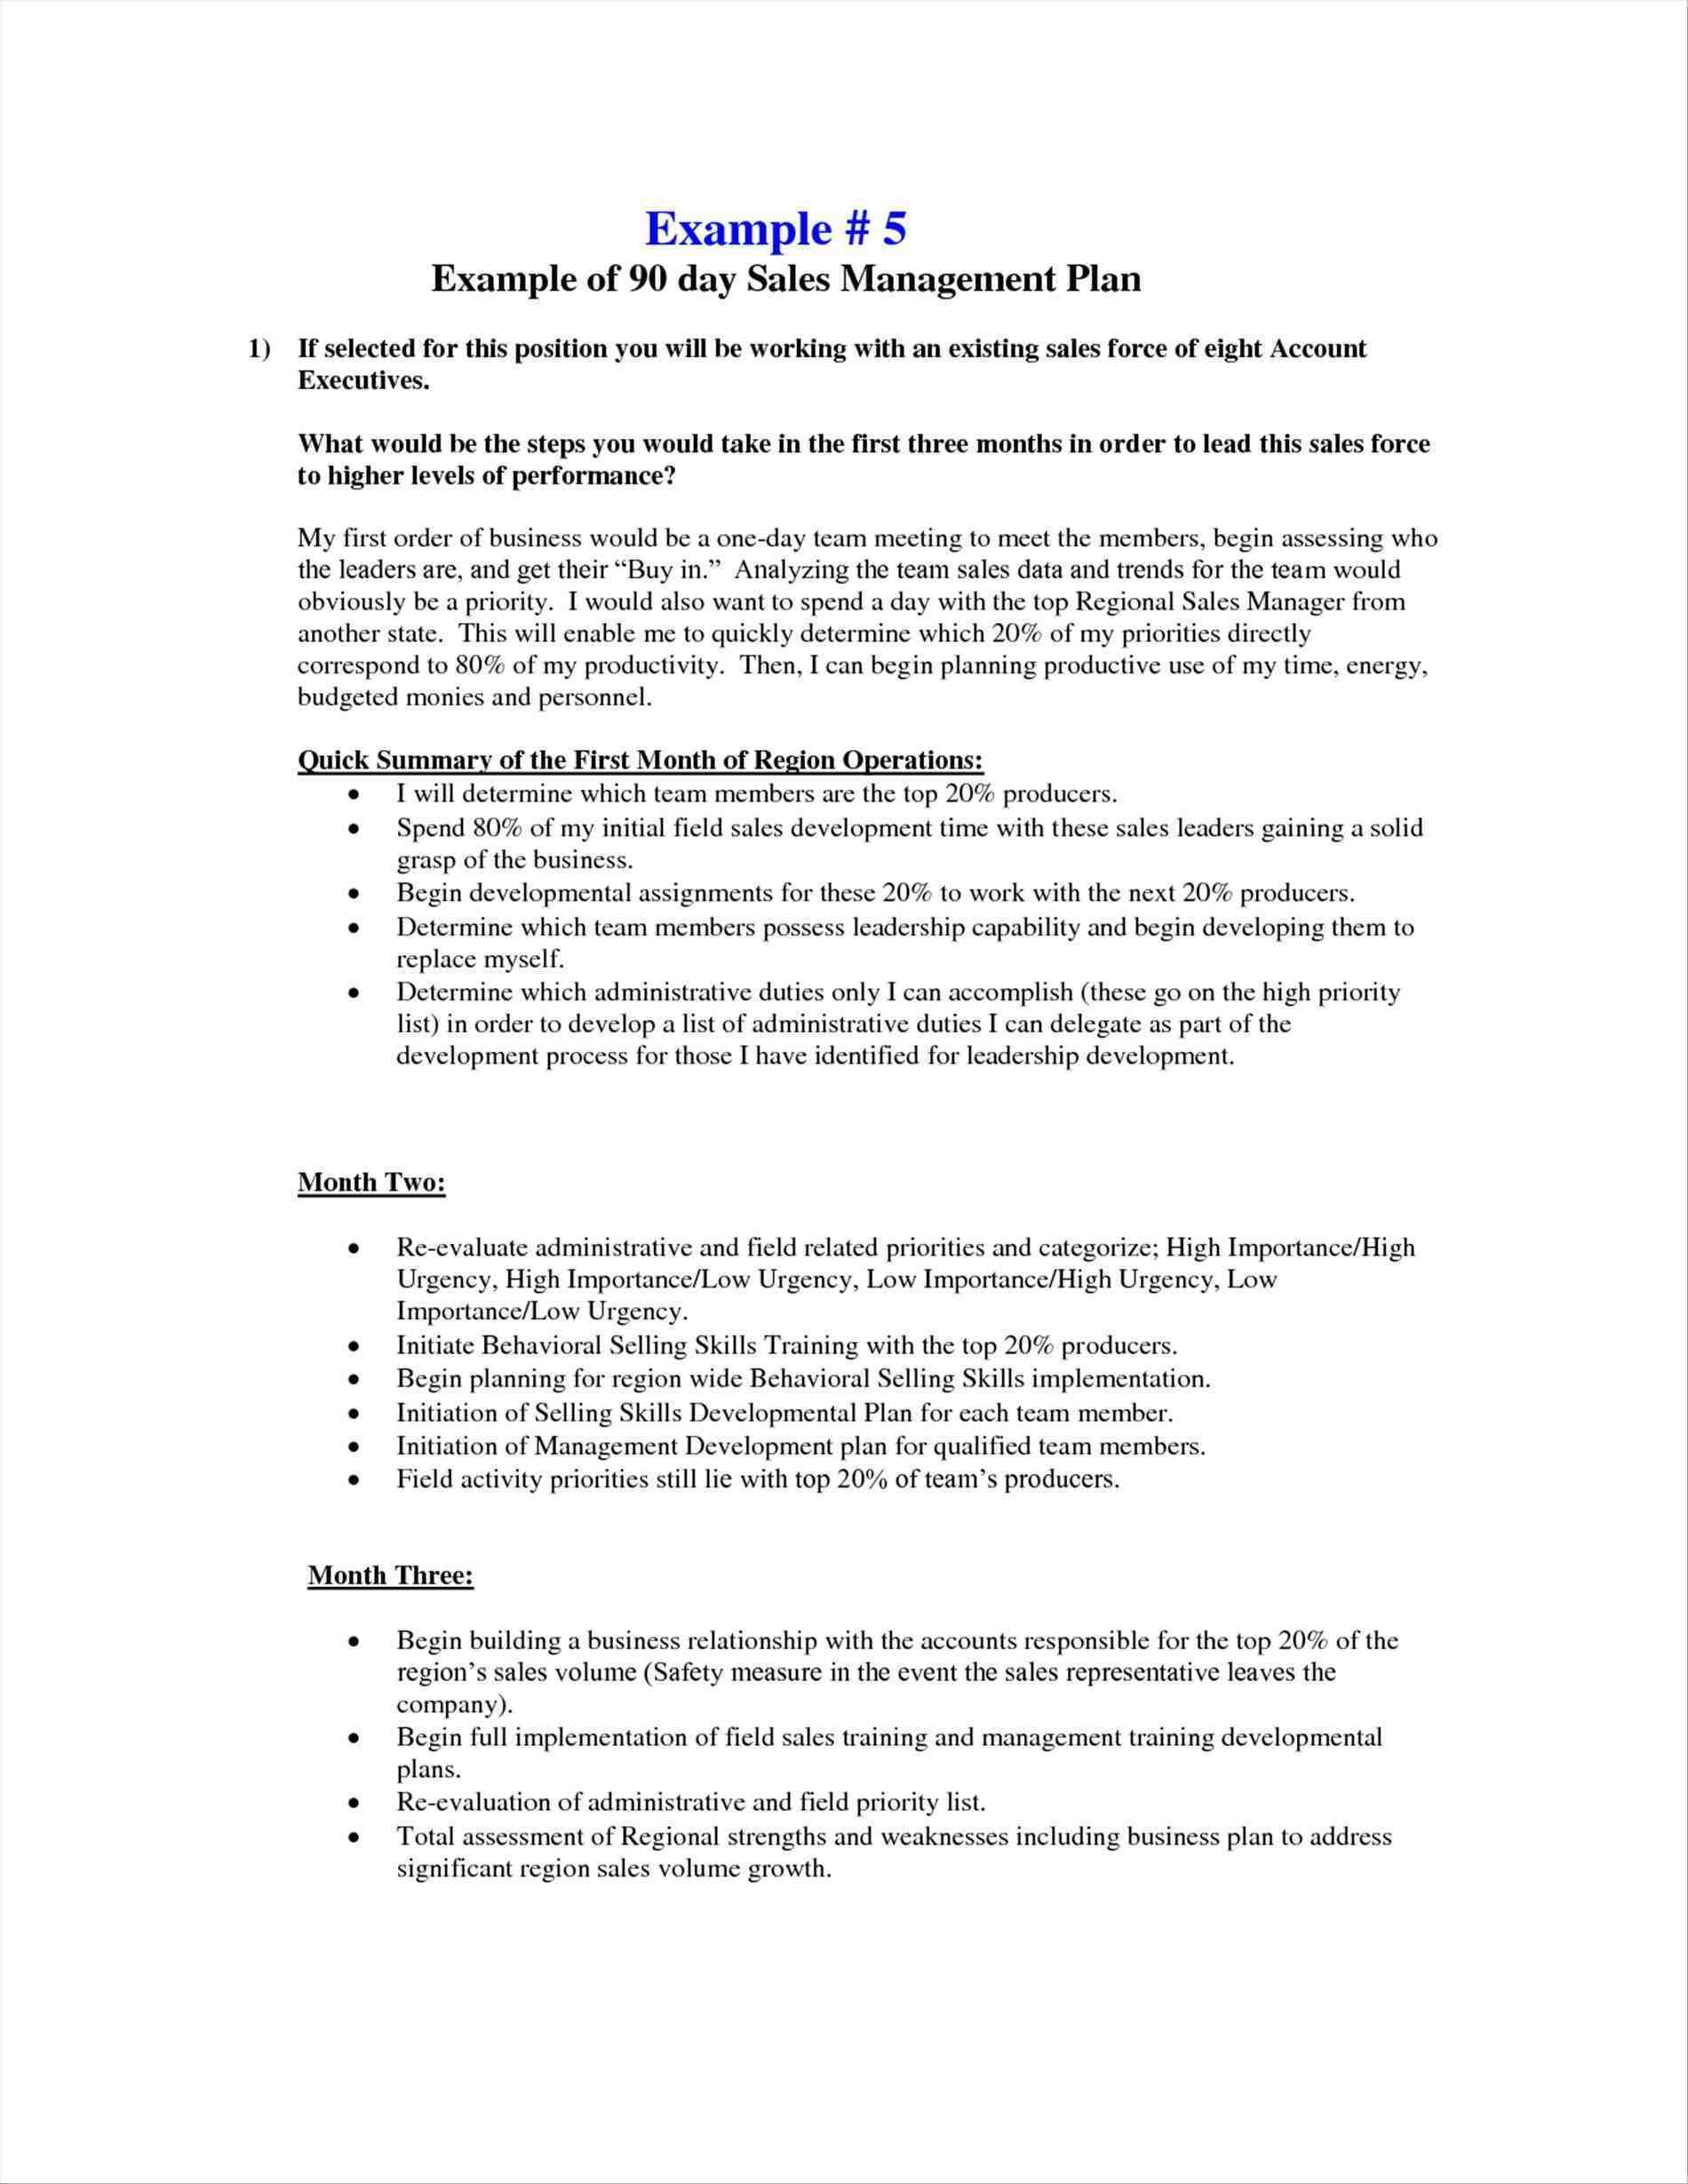 Examples business lease agreement form free sales 90 day business examples business lease agreement form free sales 90 day business plan template for interview plan template examples business lease agreement form accmission